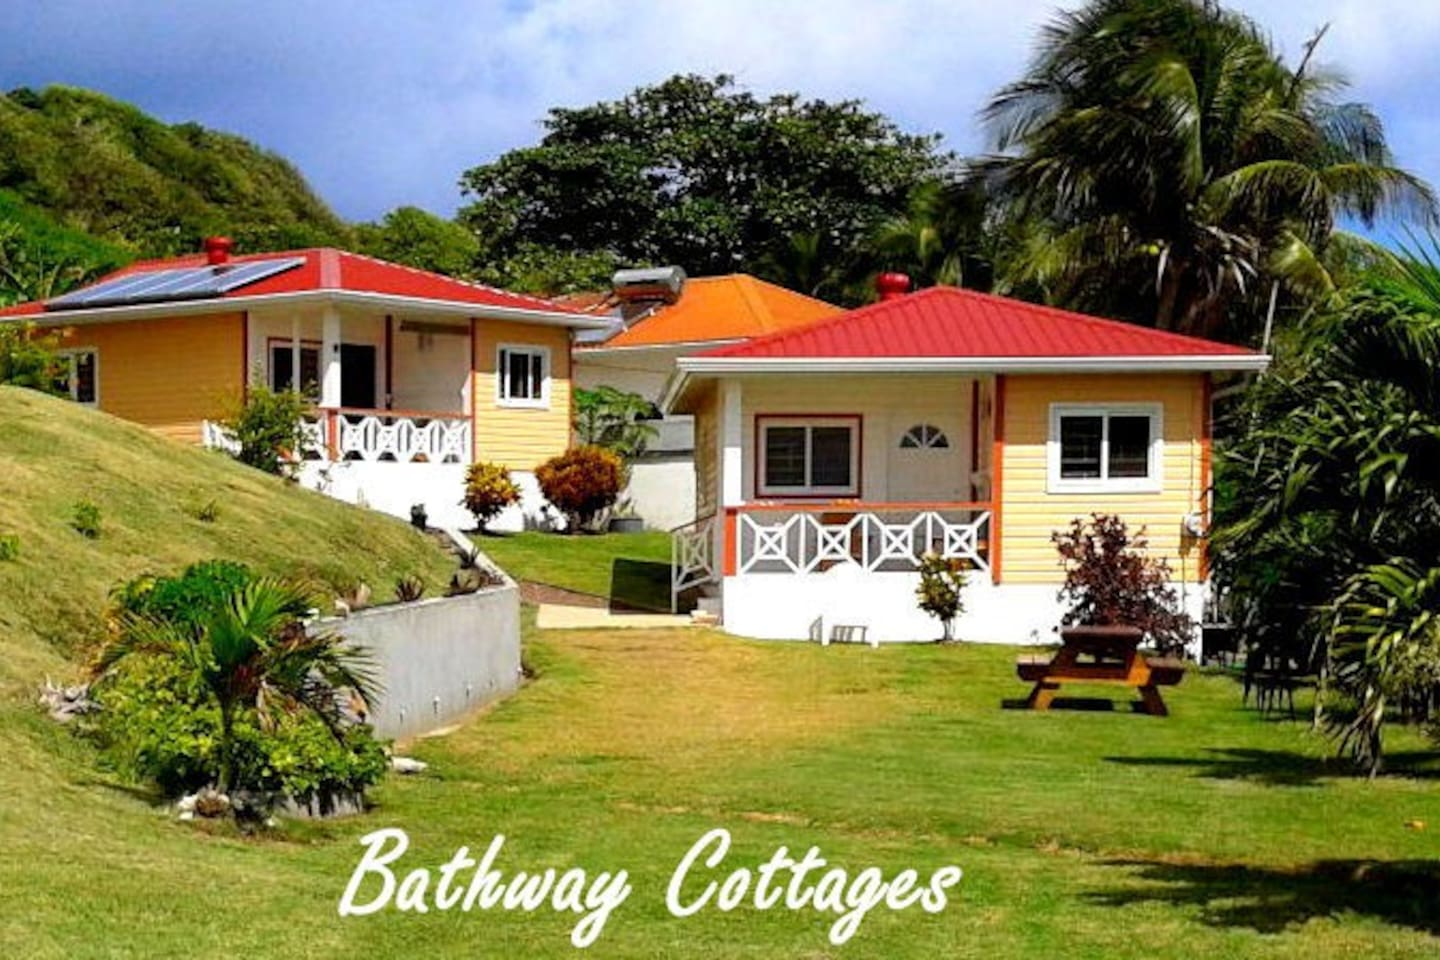 Welcome To Bathway Cottages